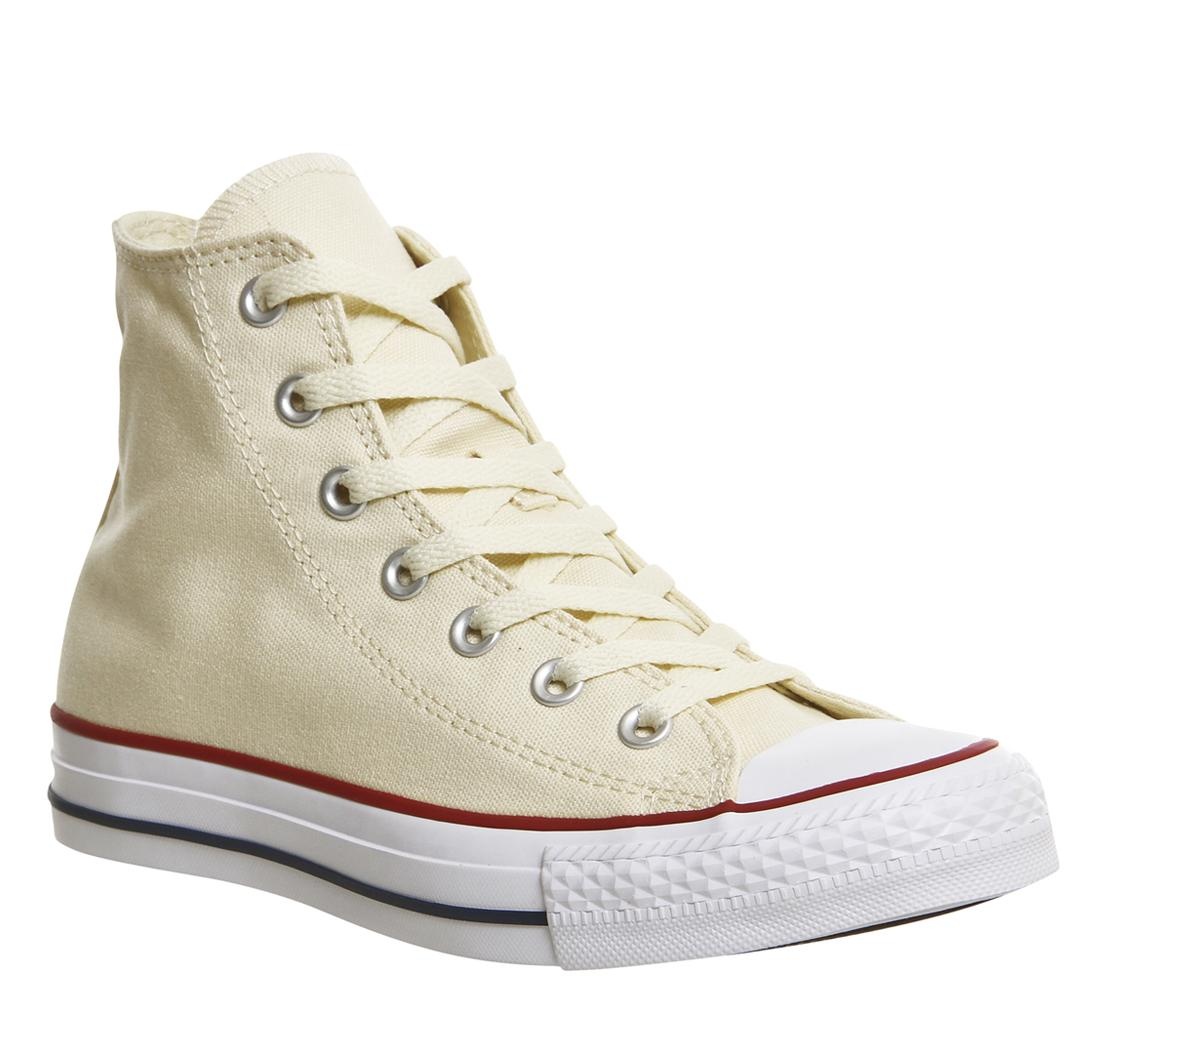 44717c2f33dc Converse All Star Hi. Double tap to zoom into the image